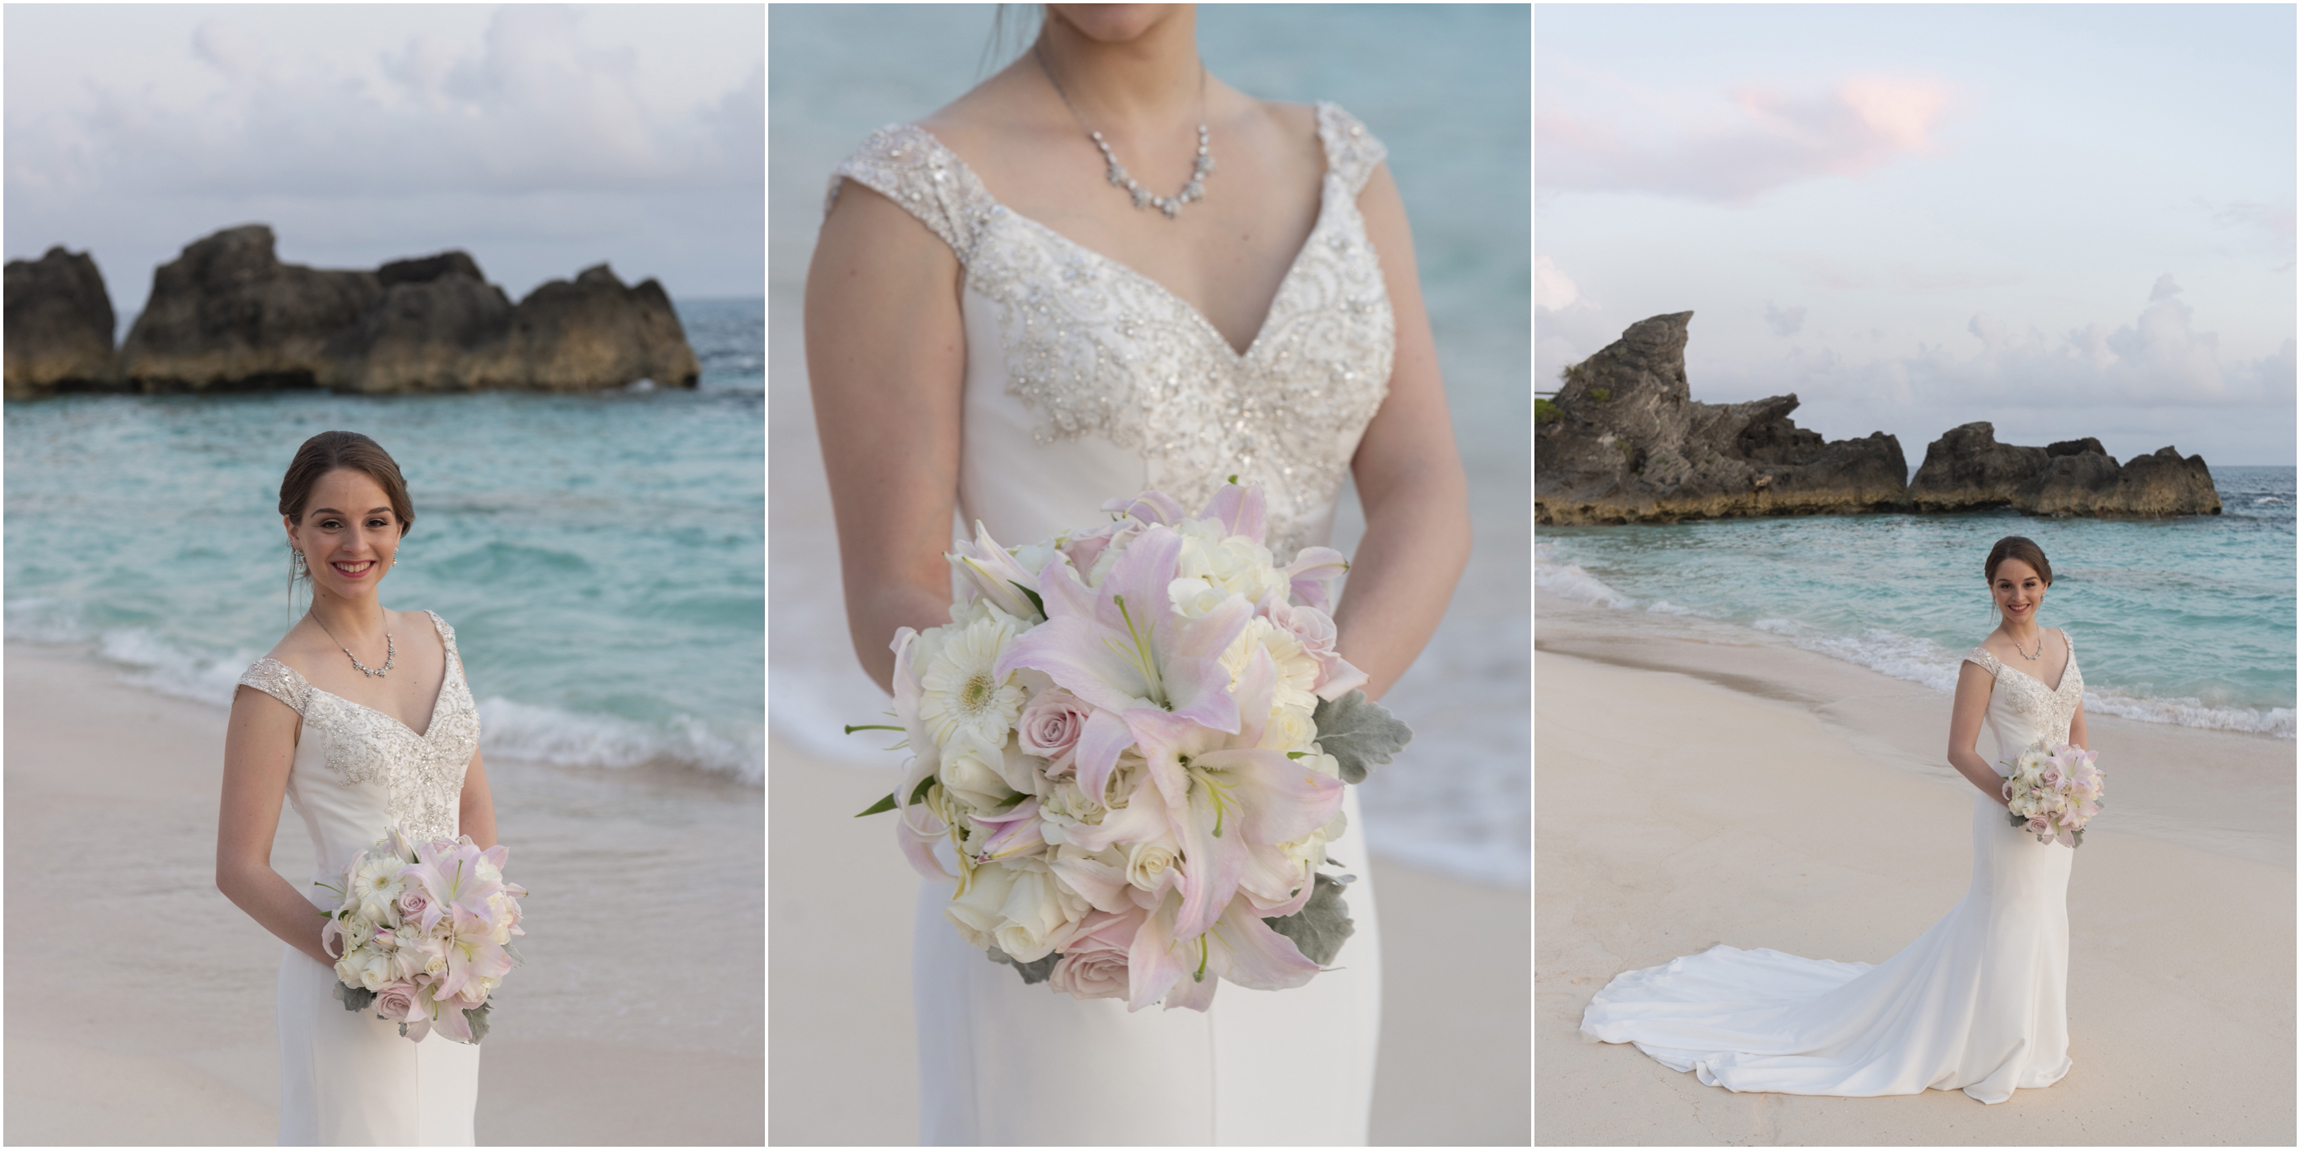 ©FianderFoto_Caribbean_Wedding_Photographer_The Reefs_Bermuda_Lauren_Erik_089.jpg